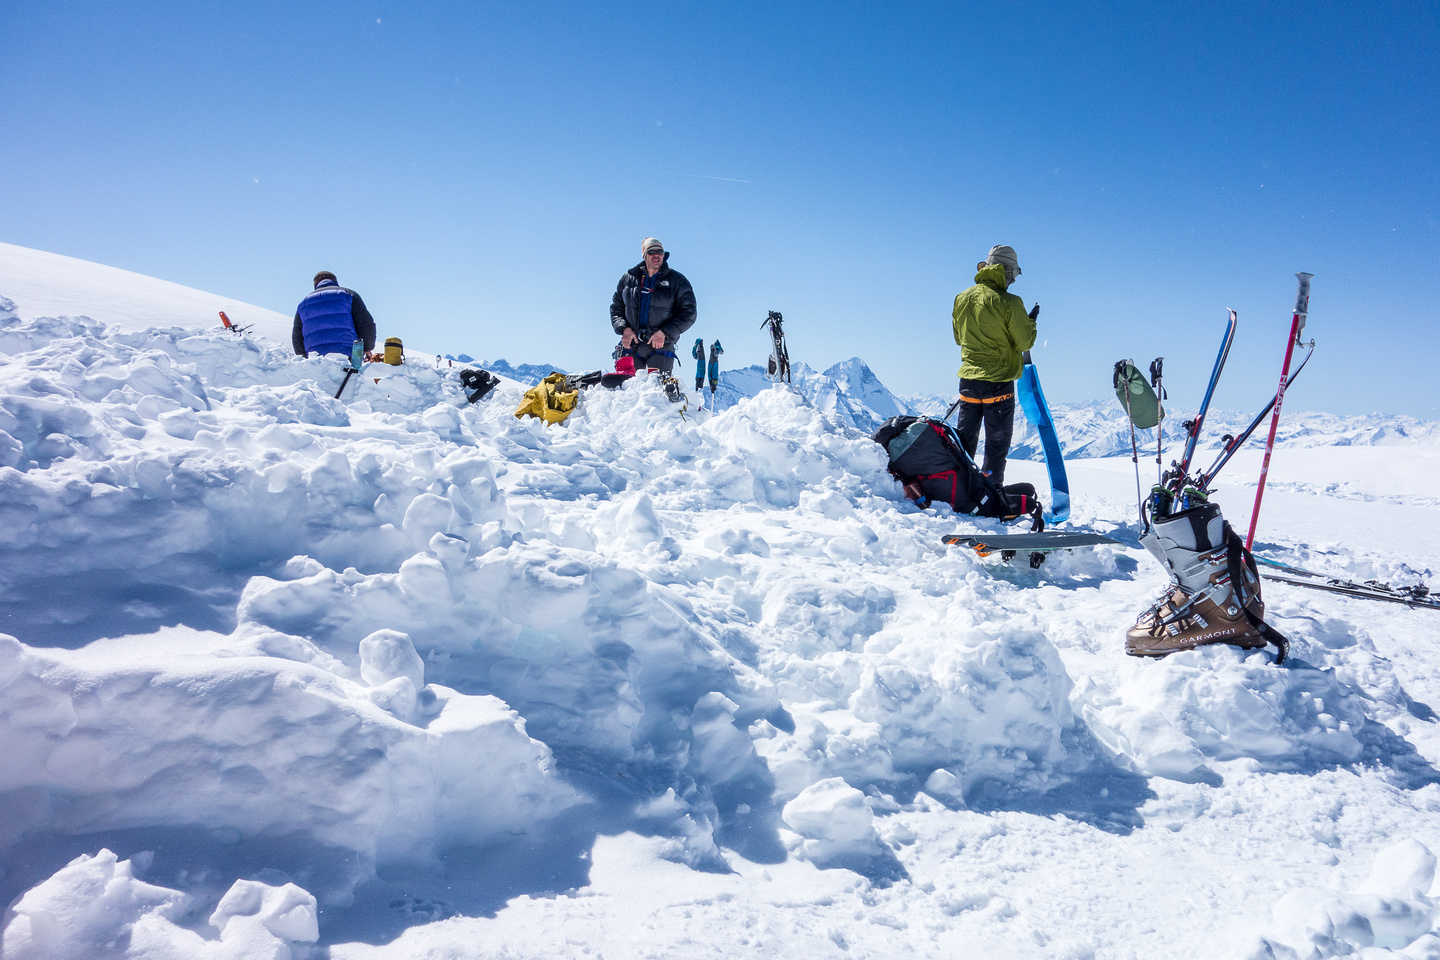 Packing up camp on the Columbia Icefield.